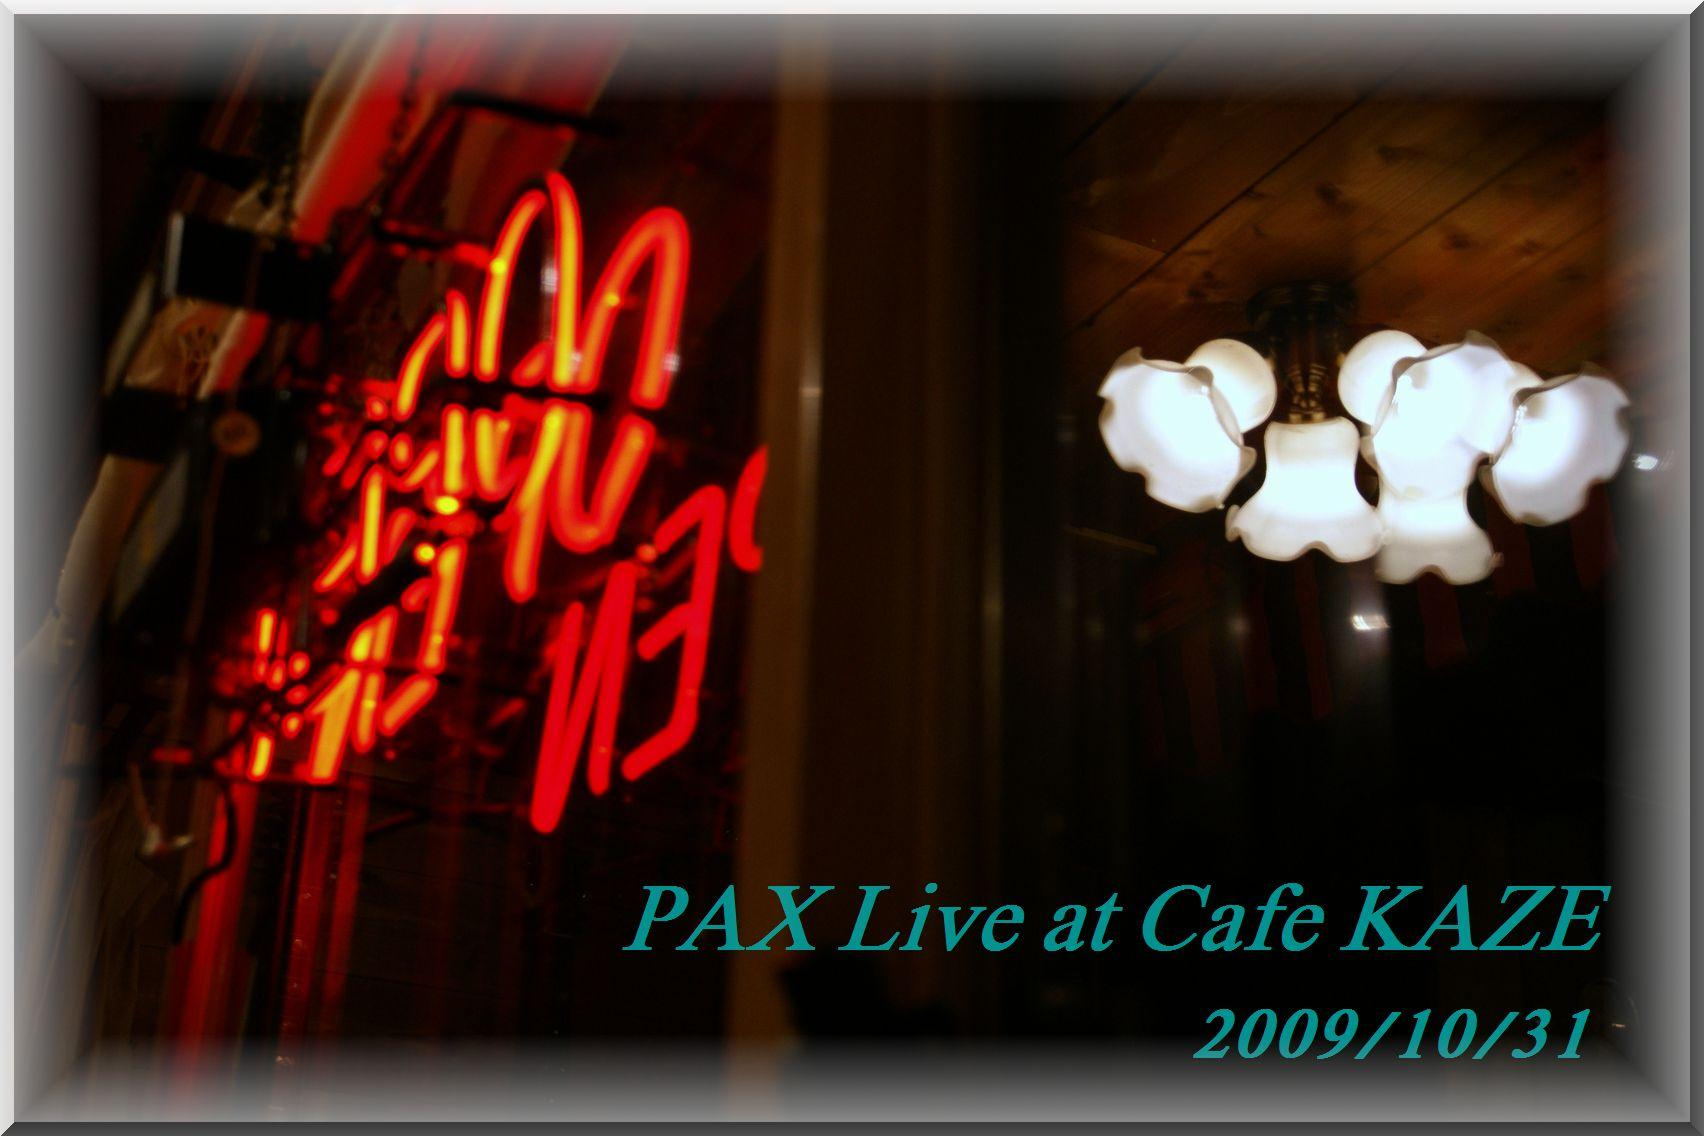 PAX Live at Cafe KAZE in AUTUMN